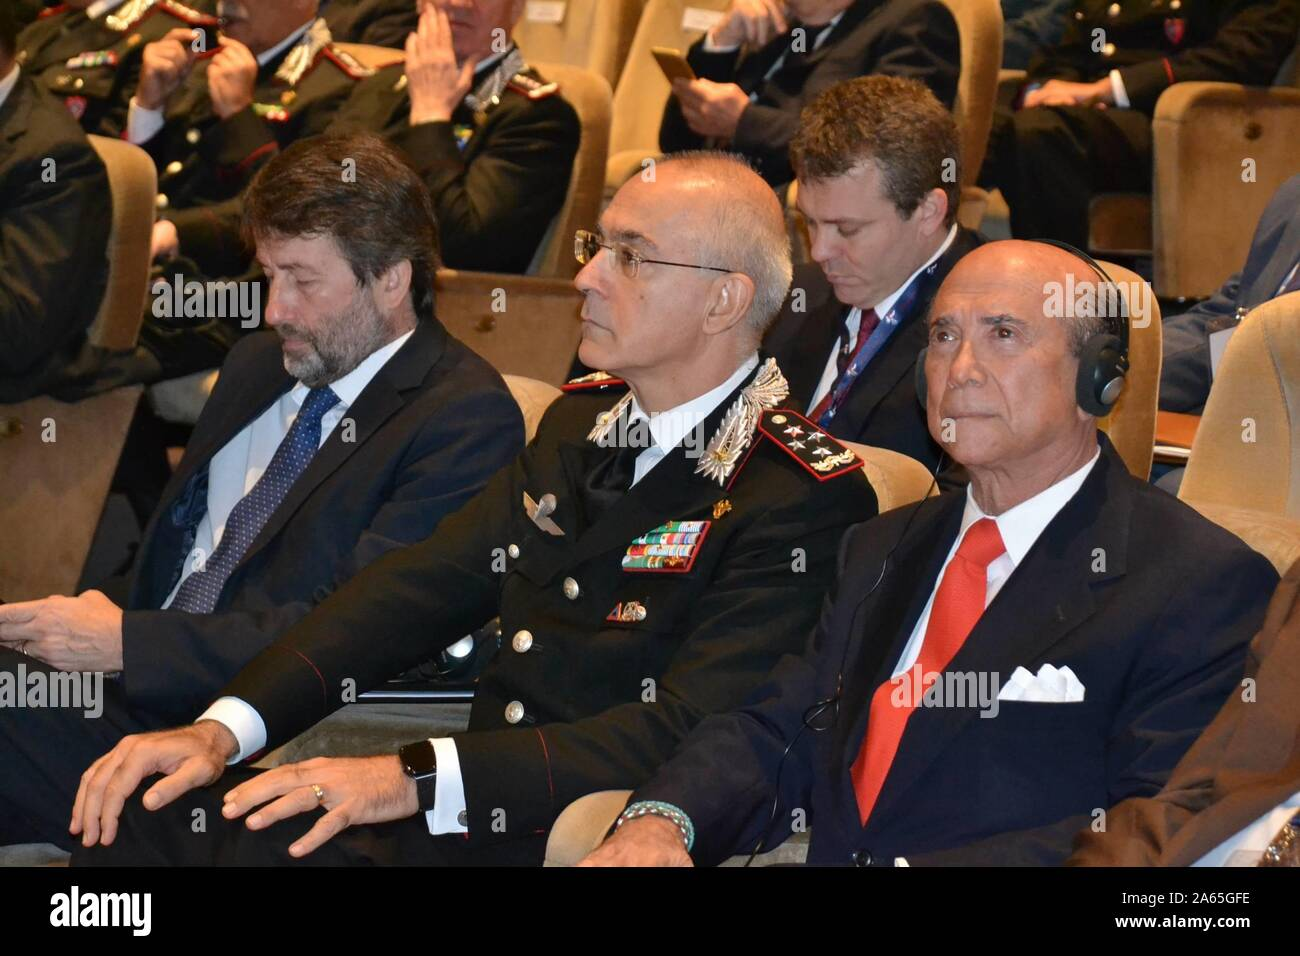 Ceremony this morning at the Carabinieri Officers' School for the return of a Roman sculpture that had been stolen and taken to America. In the photo Dario Franceschini the US ambassador Lewis Eisenberg the general commander Arma Carabinieri Giovanni Nistri (Marcellino Radogna/Fotogramma, Rome - 2019-10-24) p.s. Credit: Independent Photo Agency Srl/Alamy Live News Stock Photo